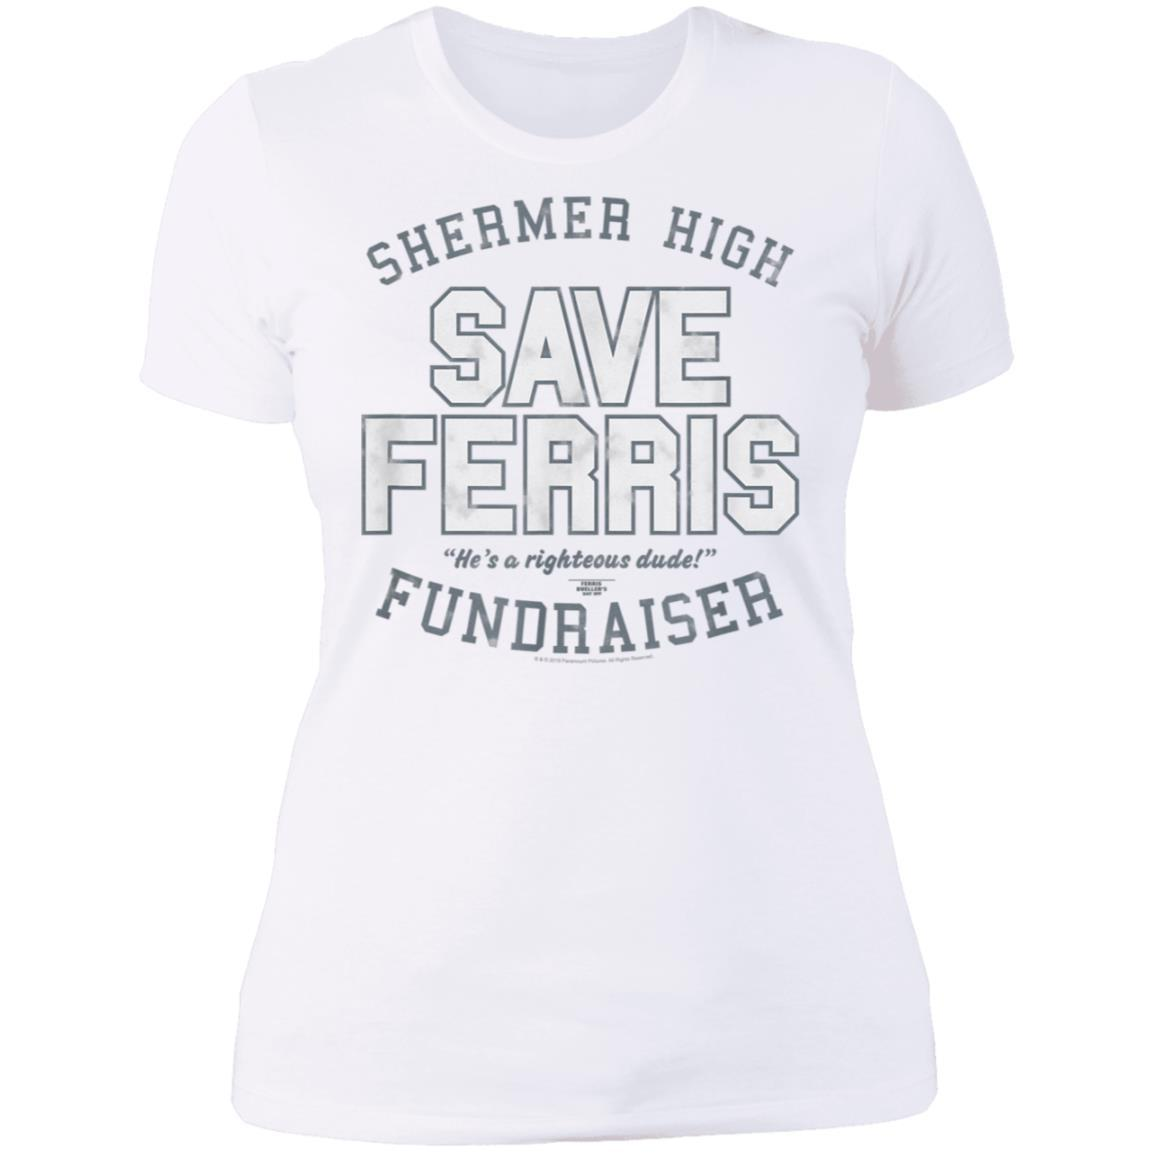 Ferris Bueller Shermer High Save Ferris Ladies' Boyfriend T-Shirt